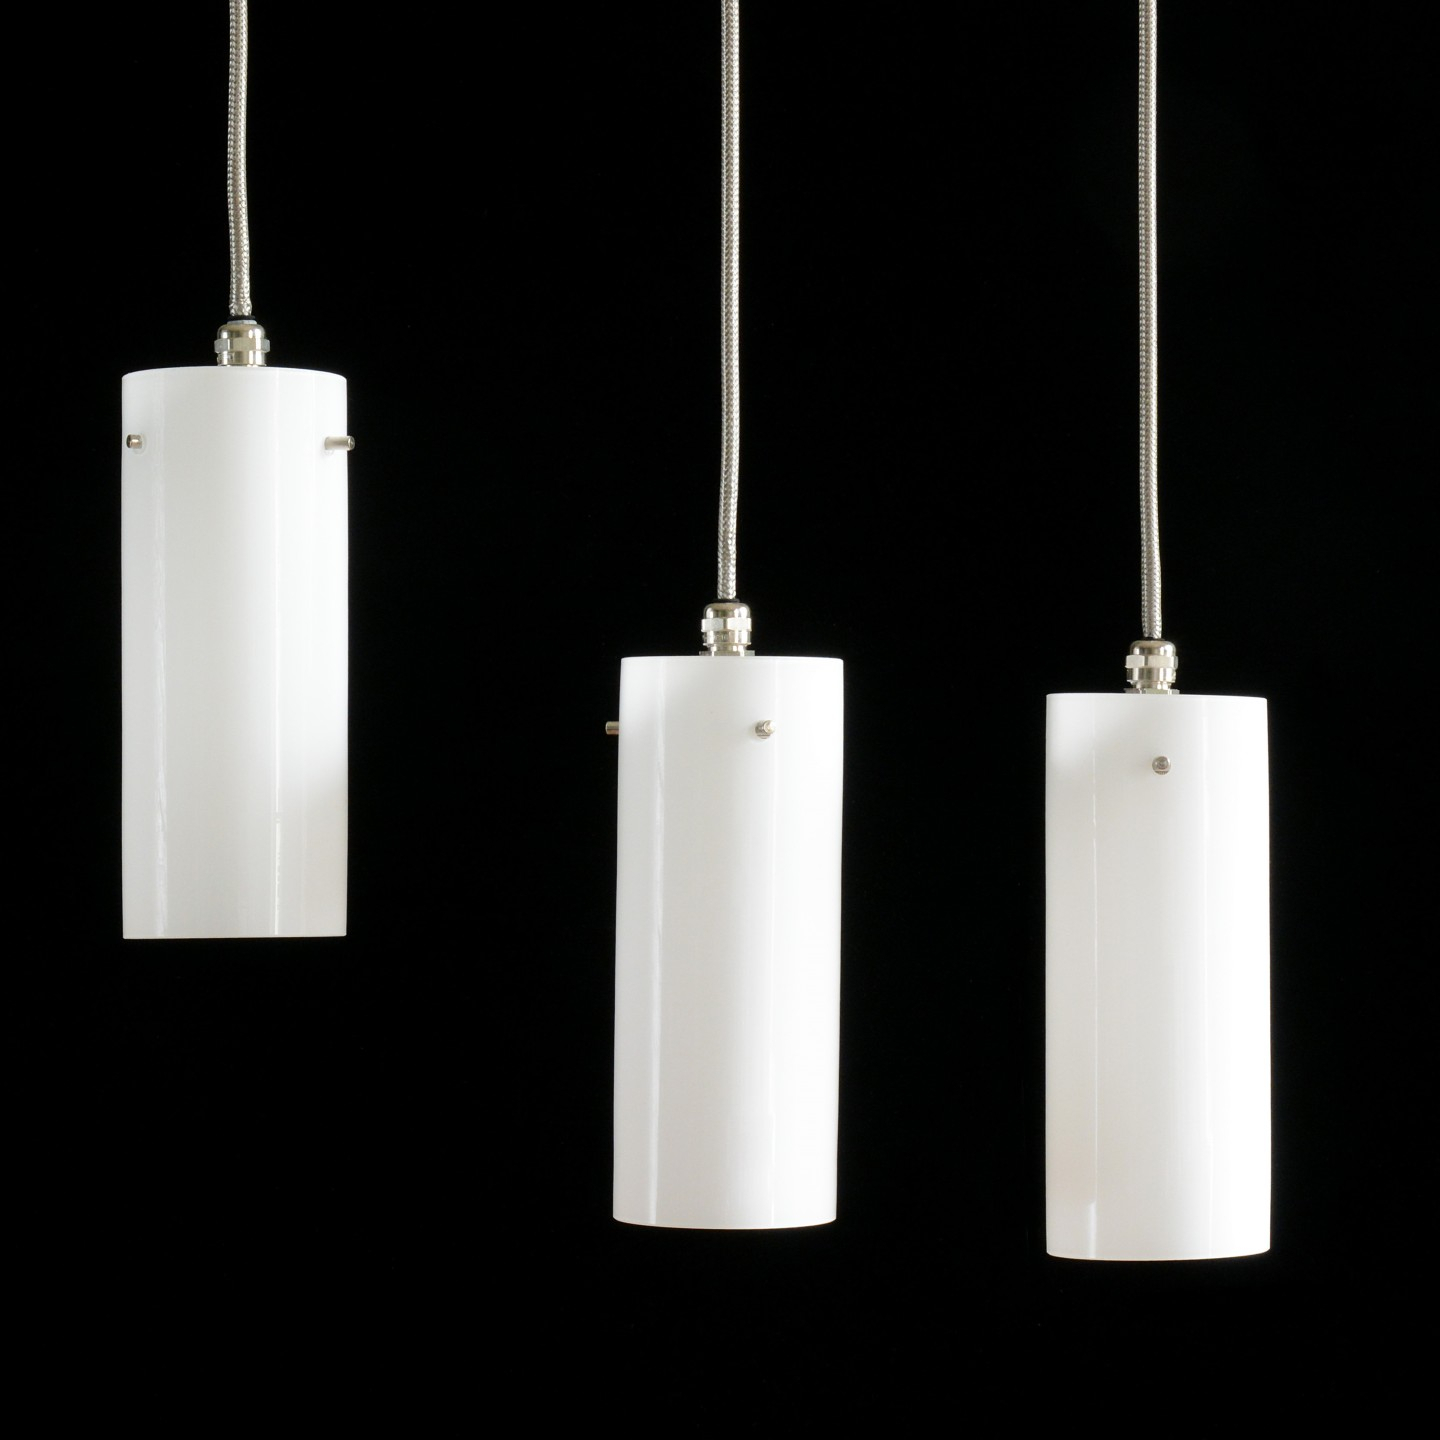 Lassco – England's Prime Resource For Architectural Antiques Throughout 3 Light Lantern Cylinder Pendants (View 18 of 30)